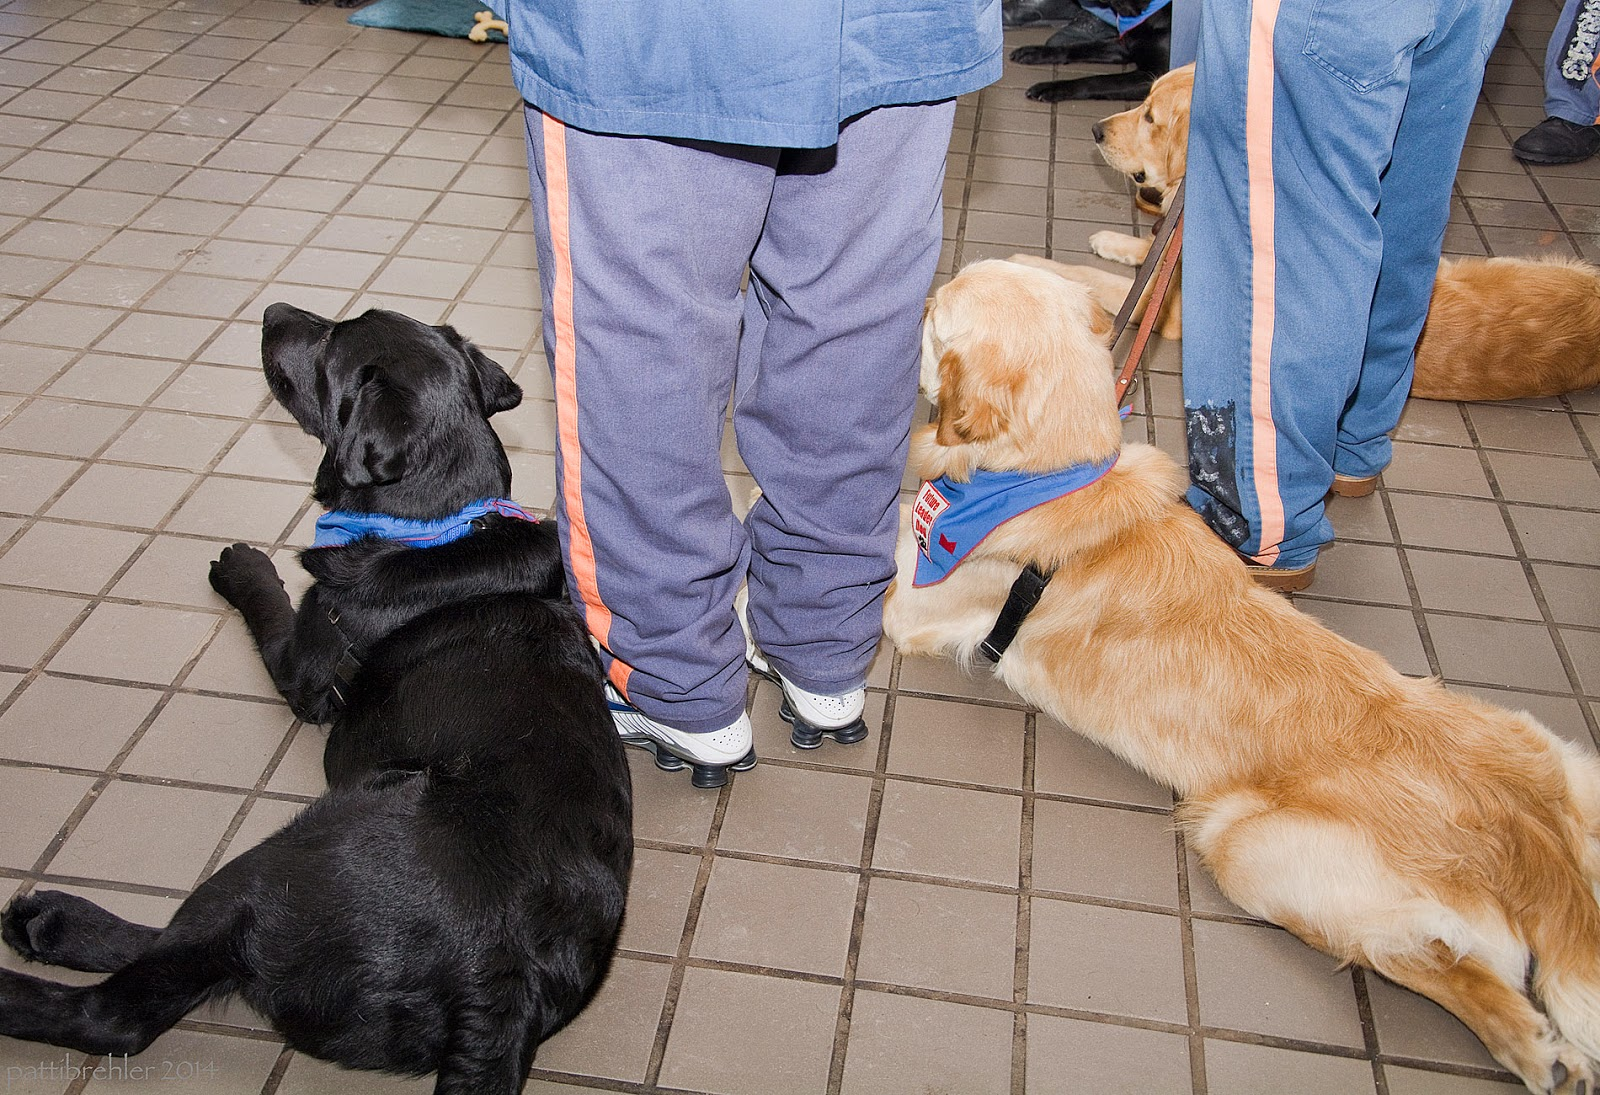 Photo is taken from behind. Three dogs, from left to right a black lab and two golden retrievers, are lying down on a tile floor in a semi-circle; the legs of two men in prison blue pants with orange stripes are standing between them. All are facing away from the camera.